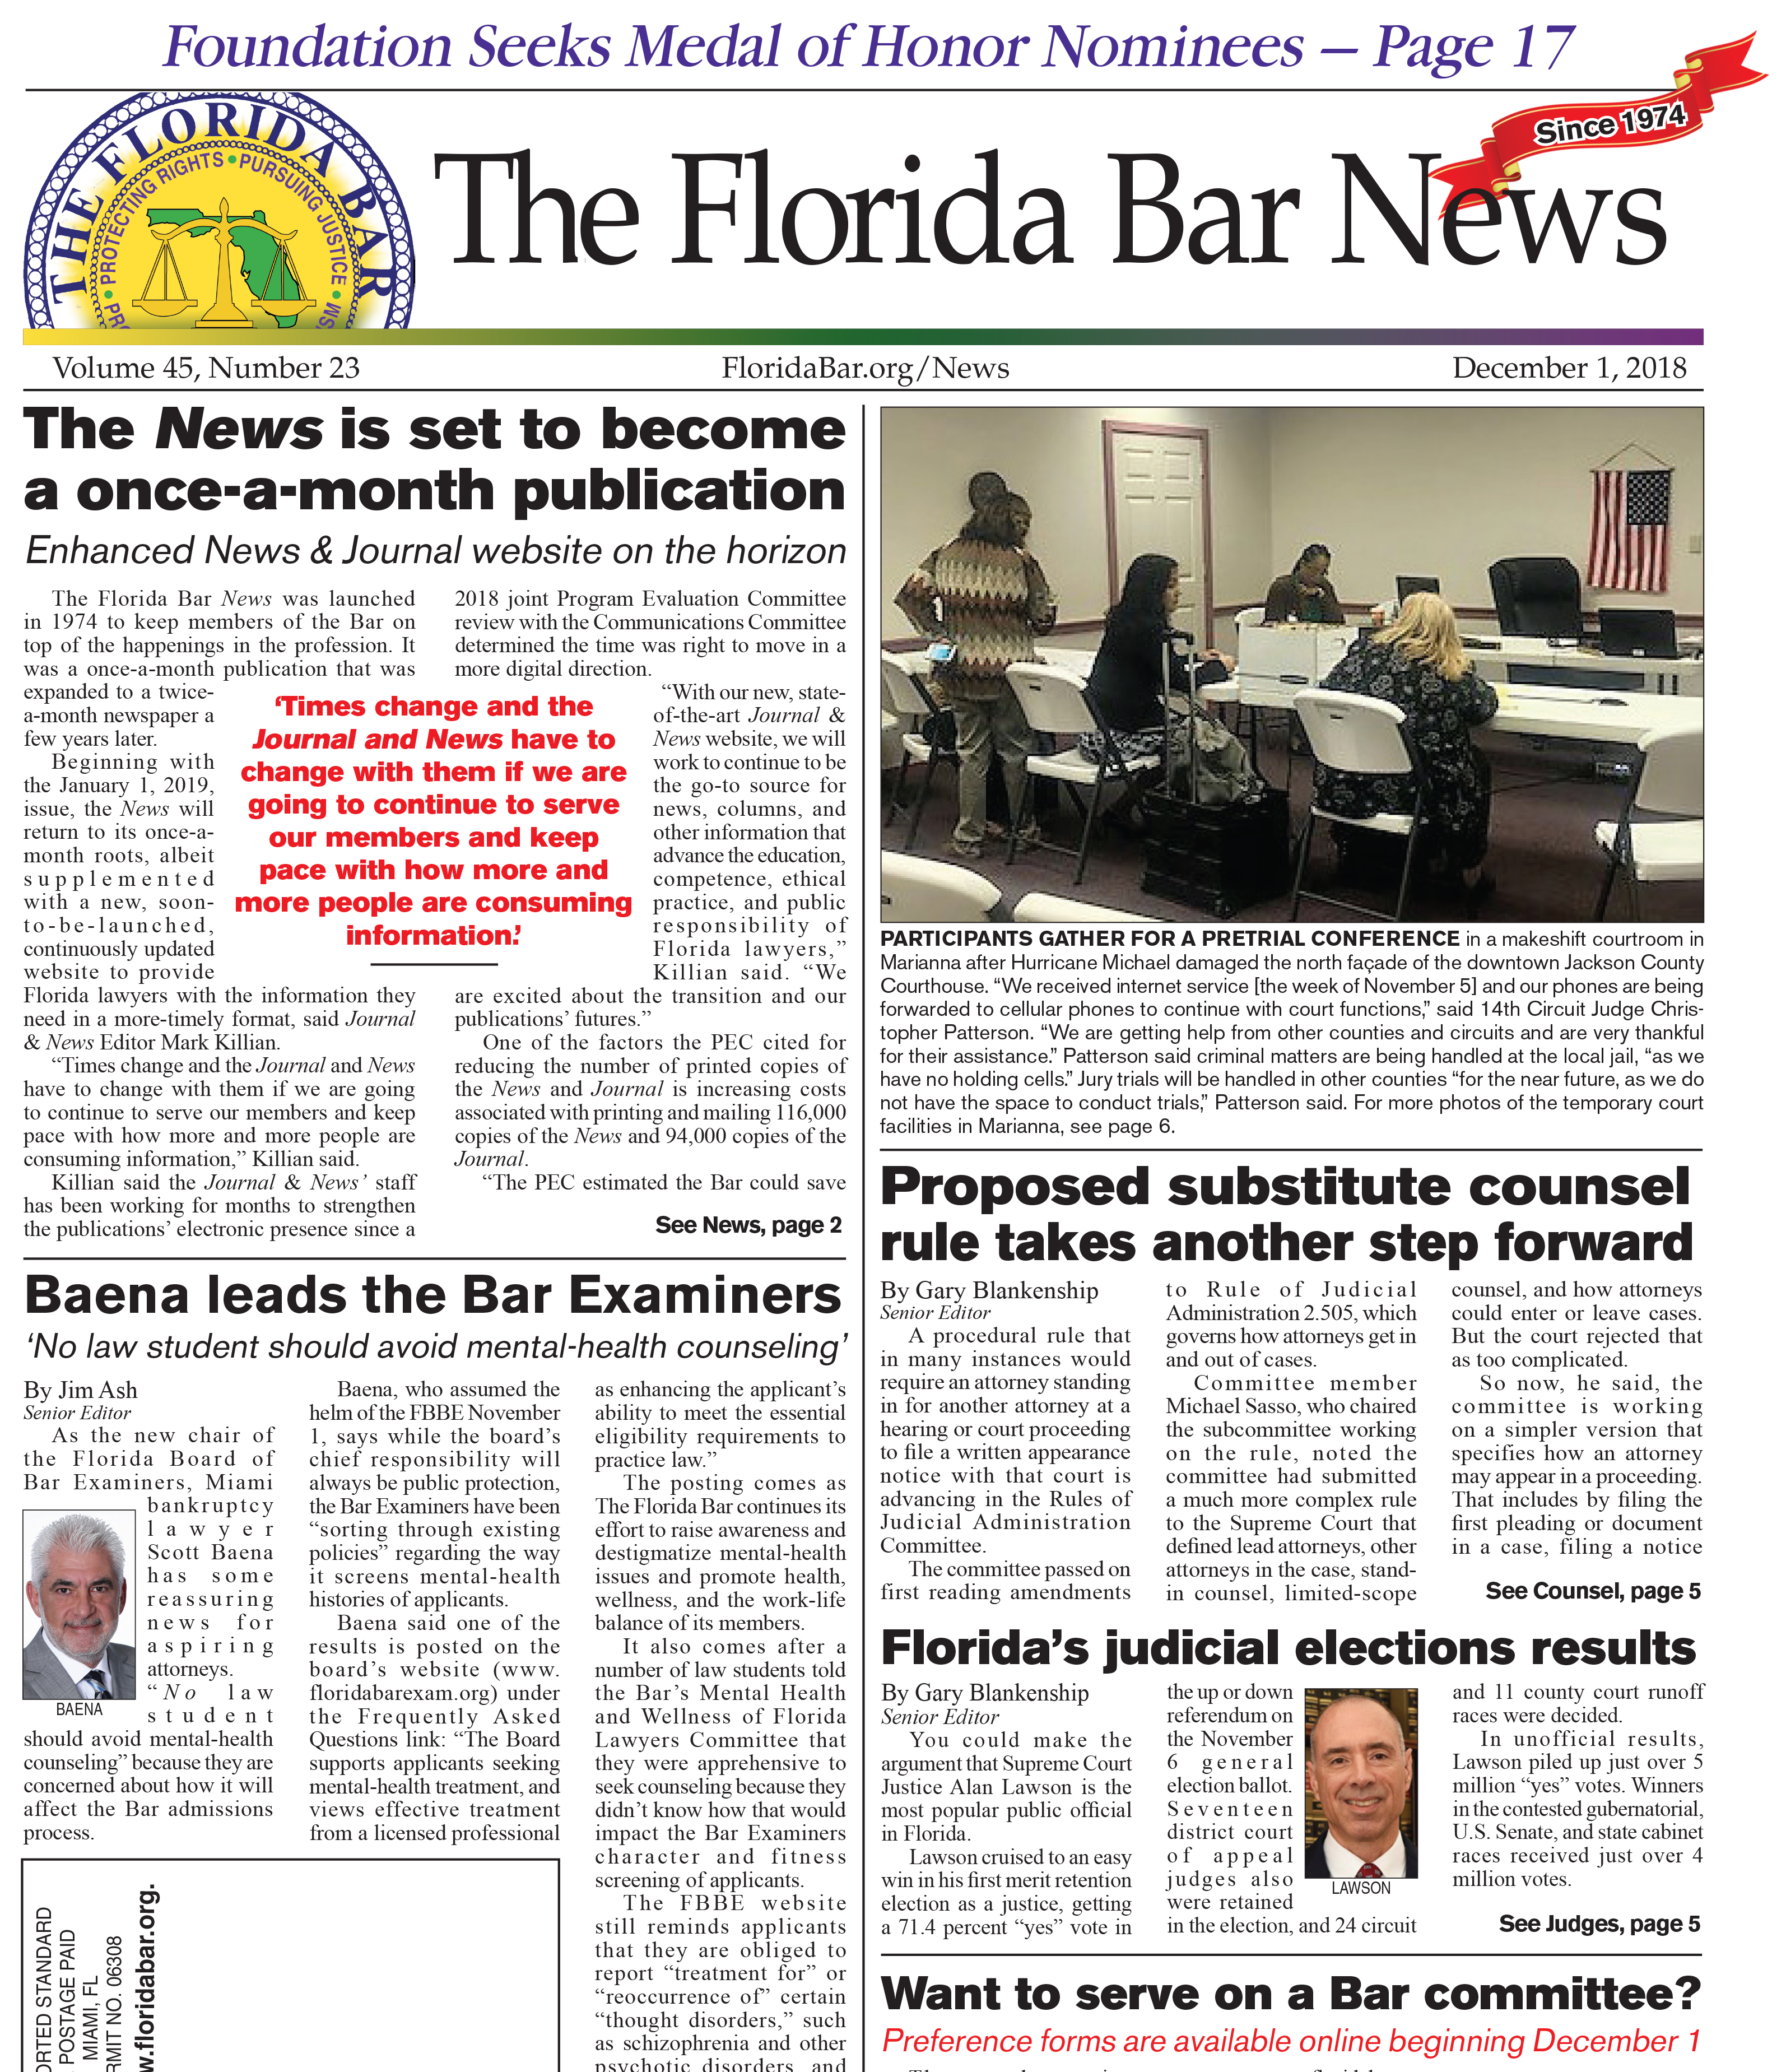 The Dec. 1 Bar News: Bar Examiners chair promotes mental-health counseling, annual committee preference forms available Dec. 1, Bar News is set to become a once-a-month publication